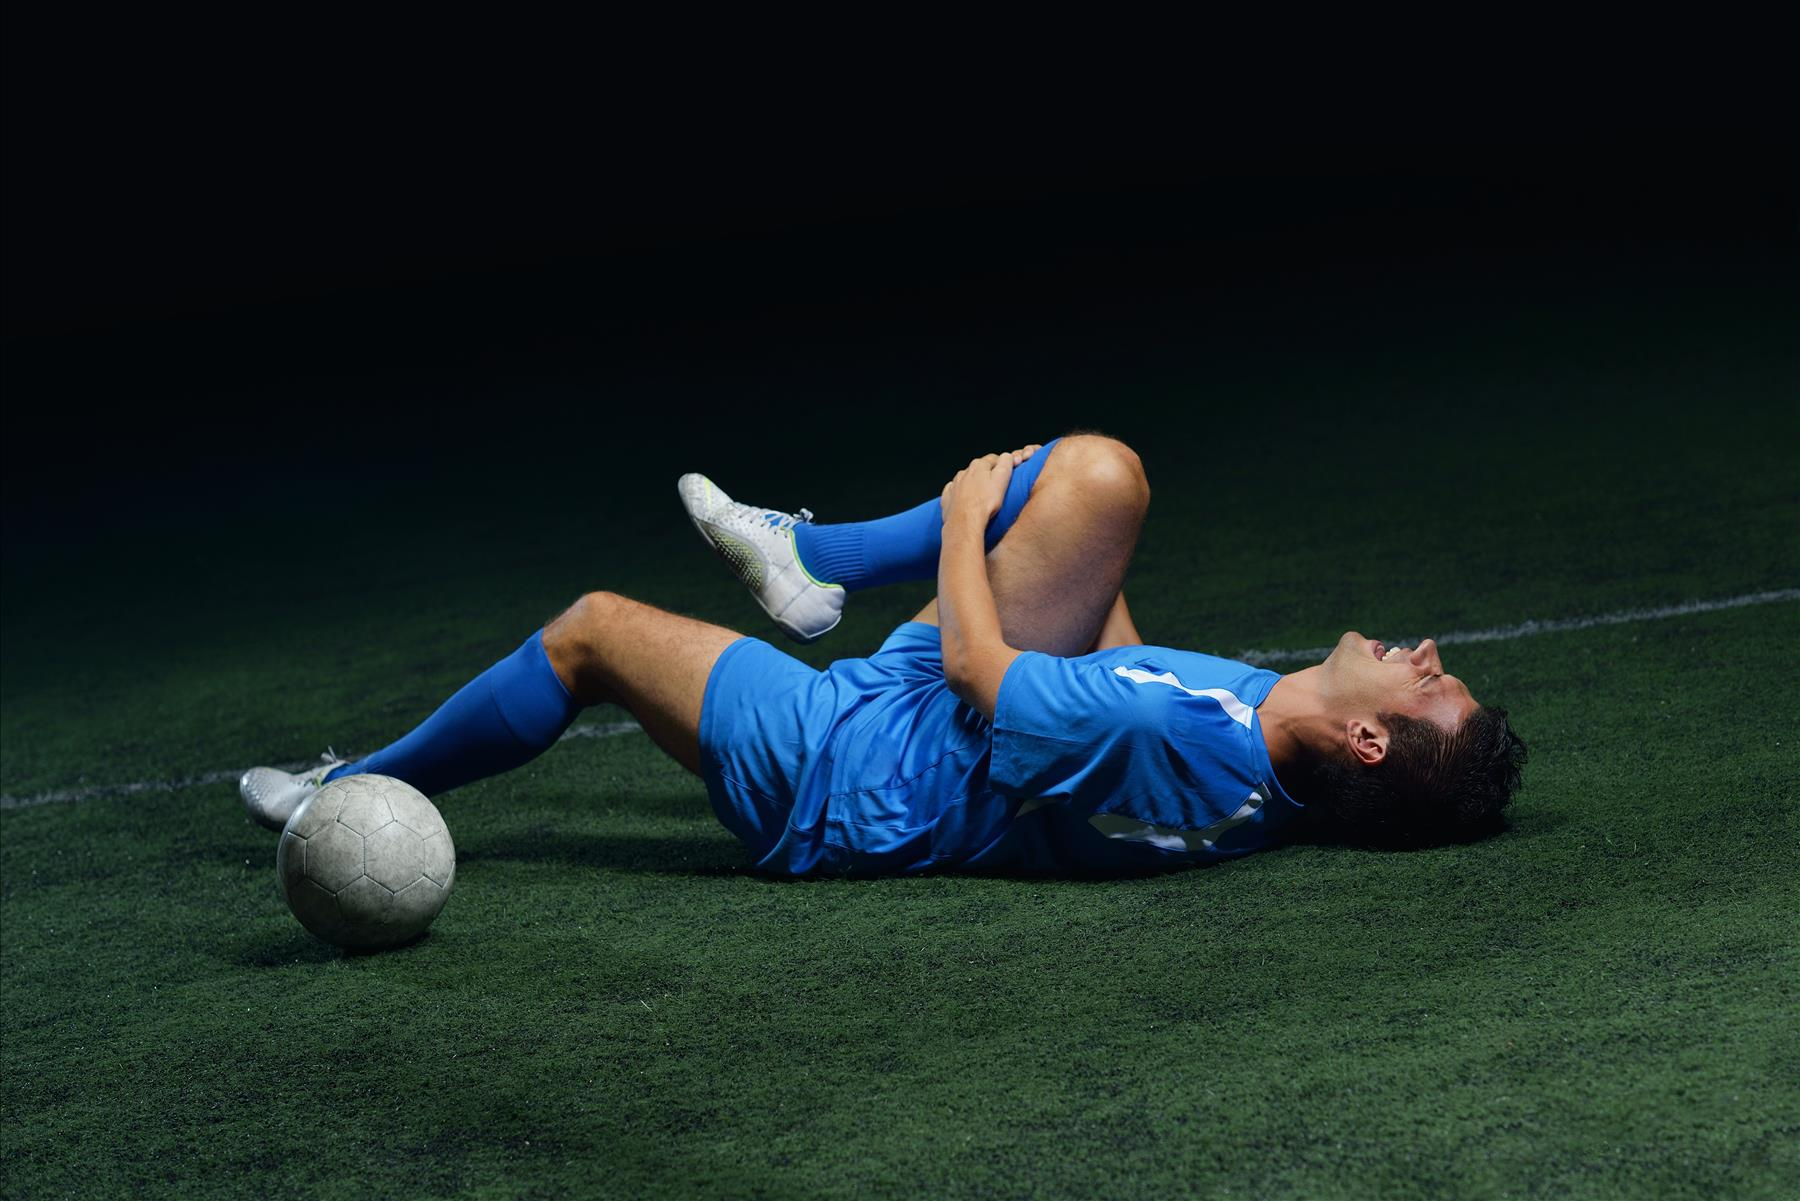 Surprising Stats about Sports Related Injury